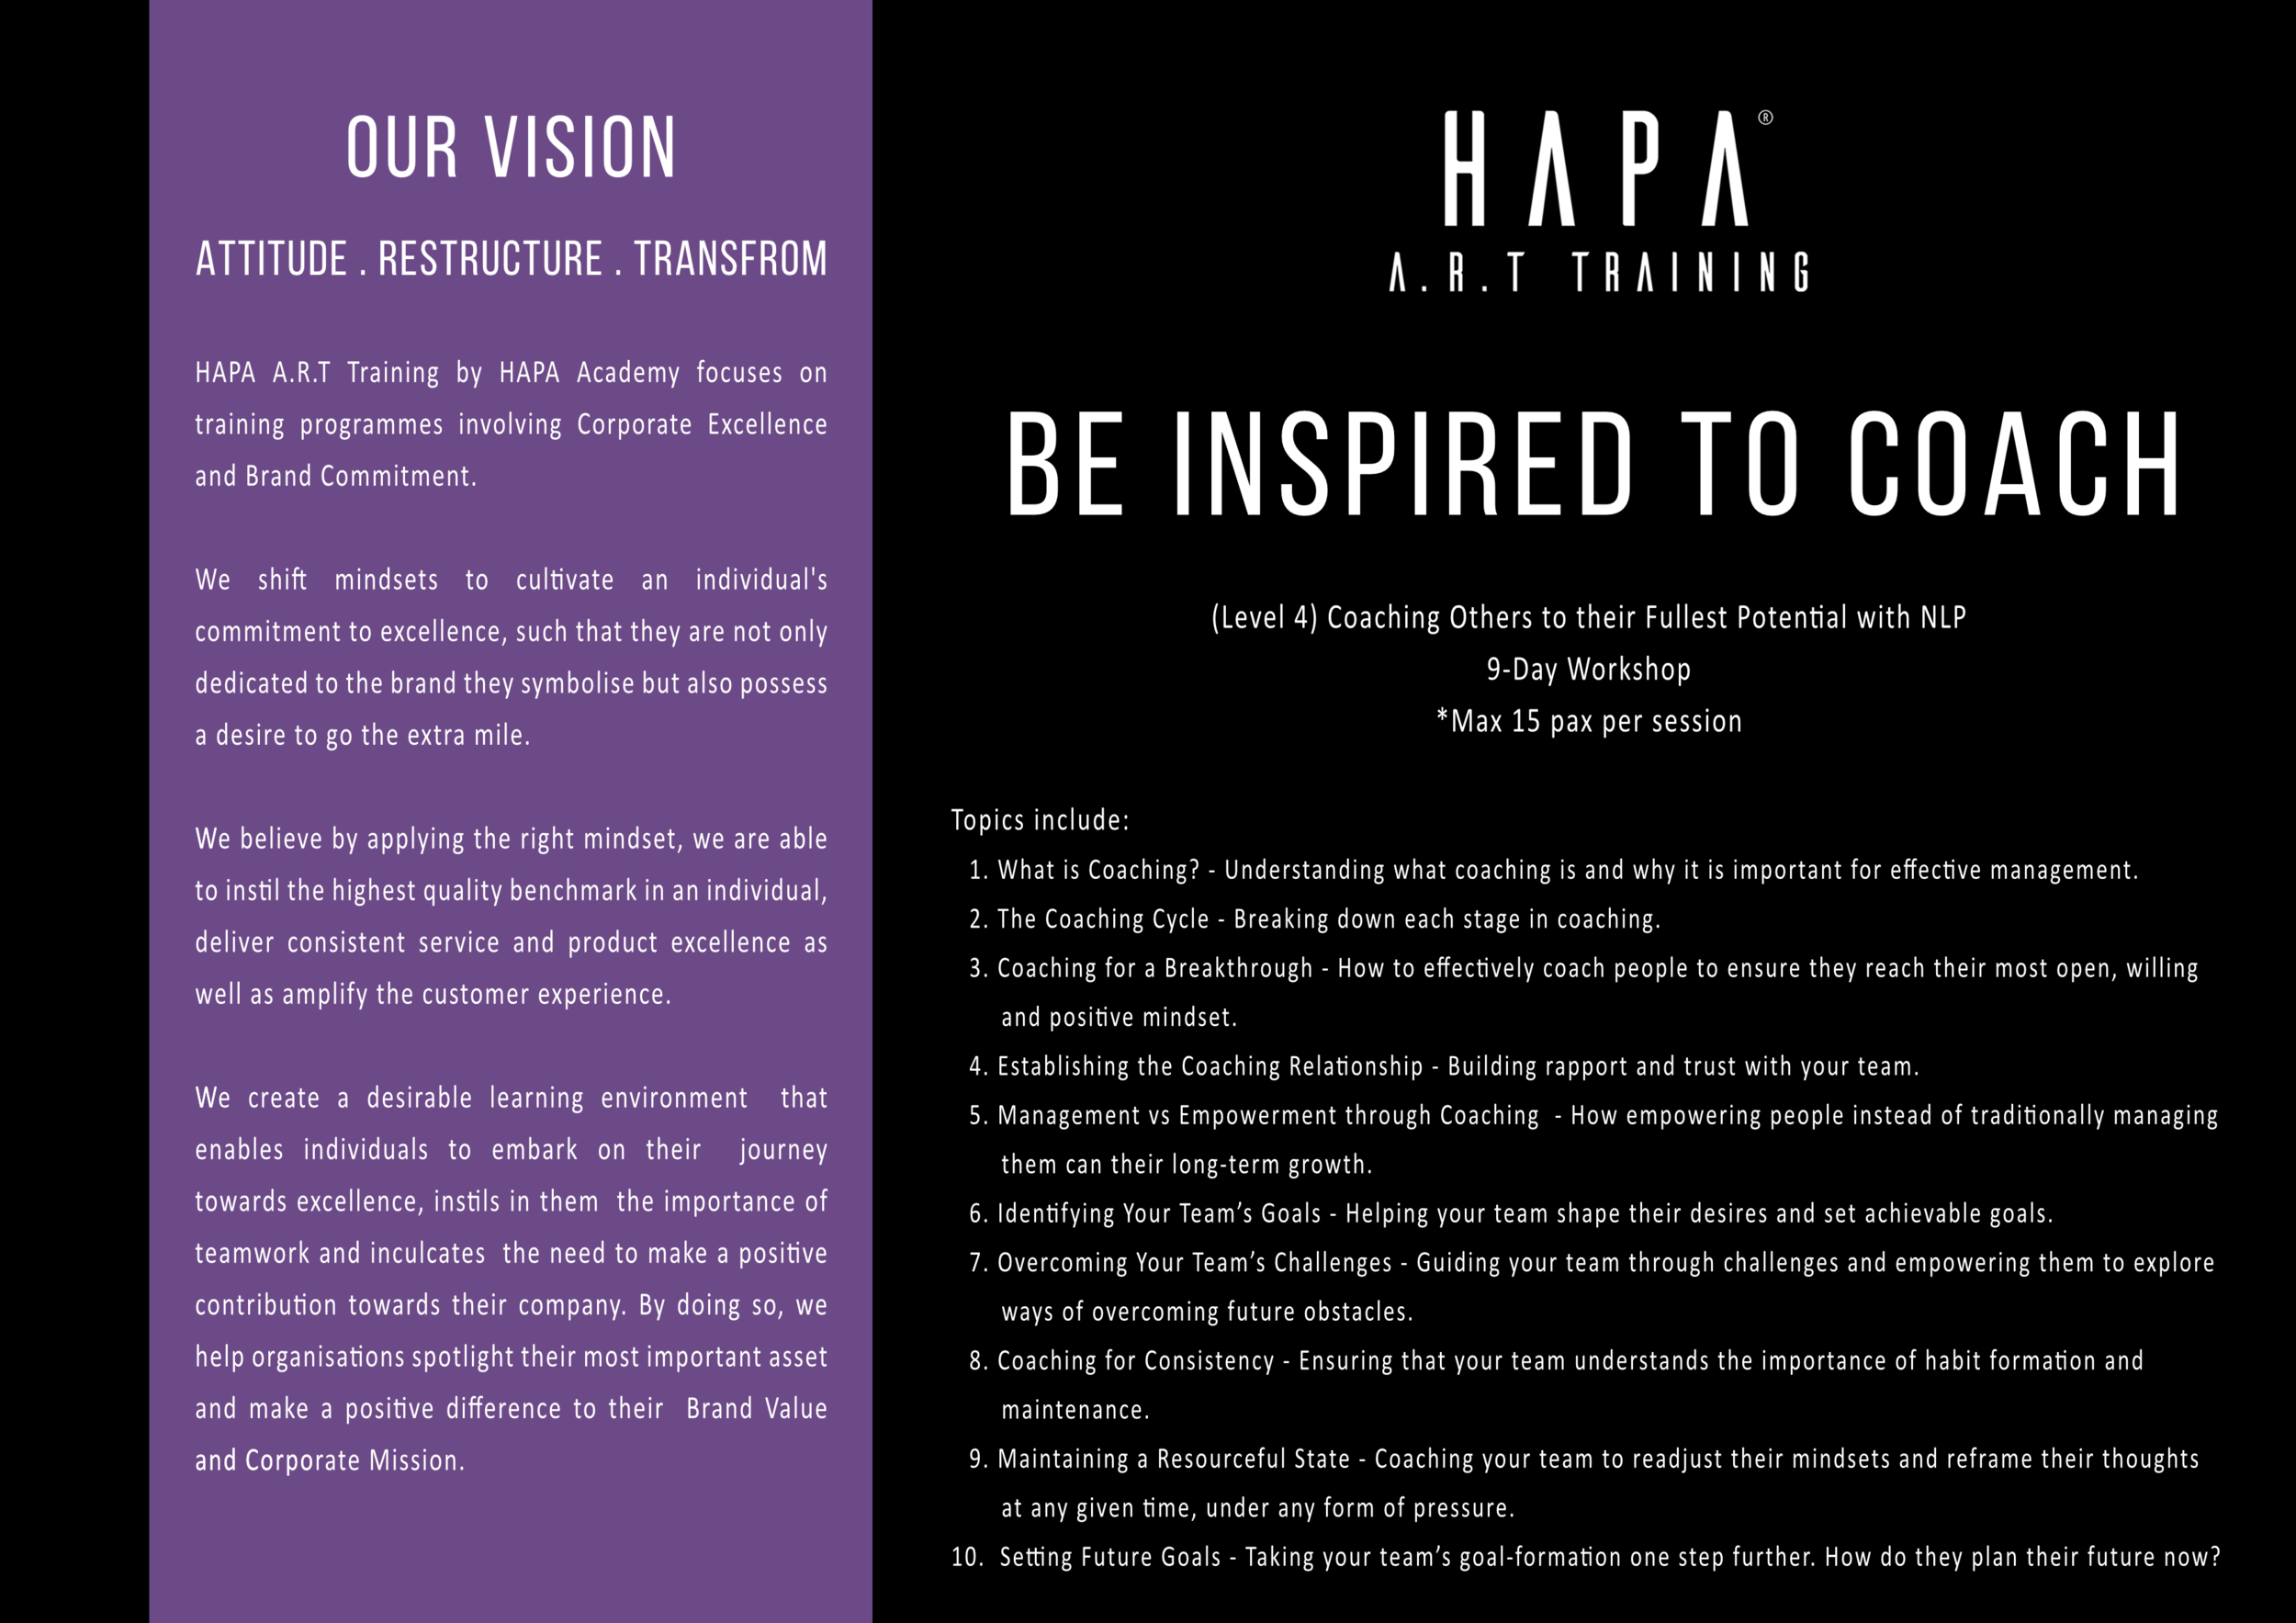 HAPA Academy - HAPA A.R.T Training - Be Inspired To Coach.png